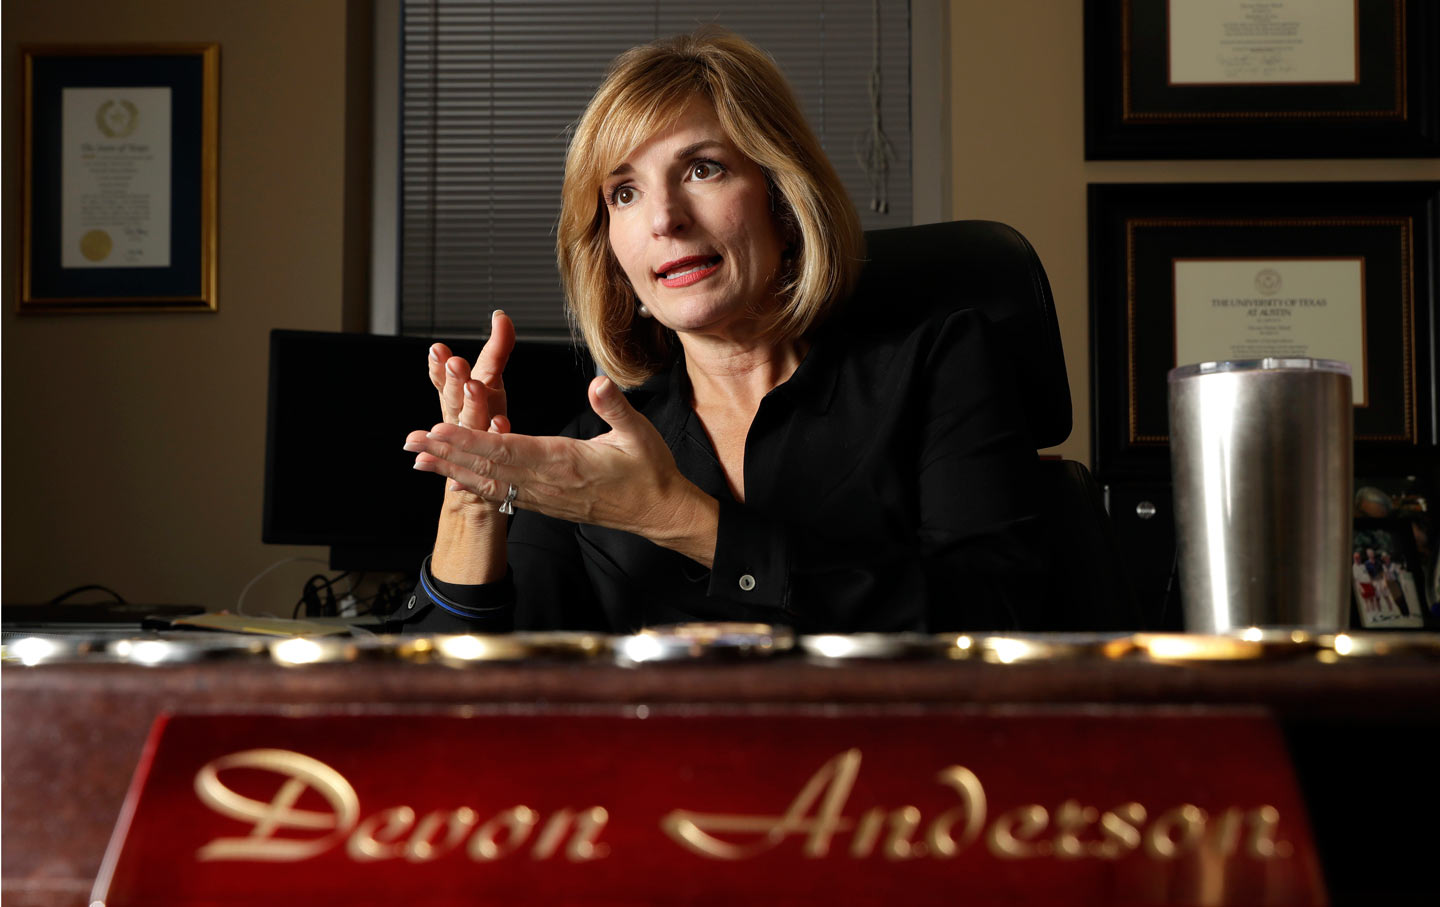 Harris County District Attorney Devon Anderson